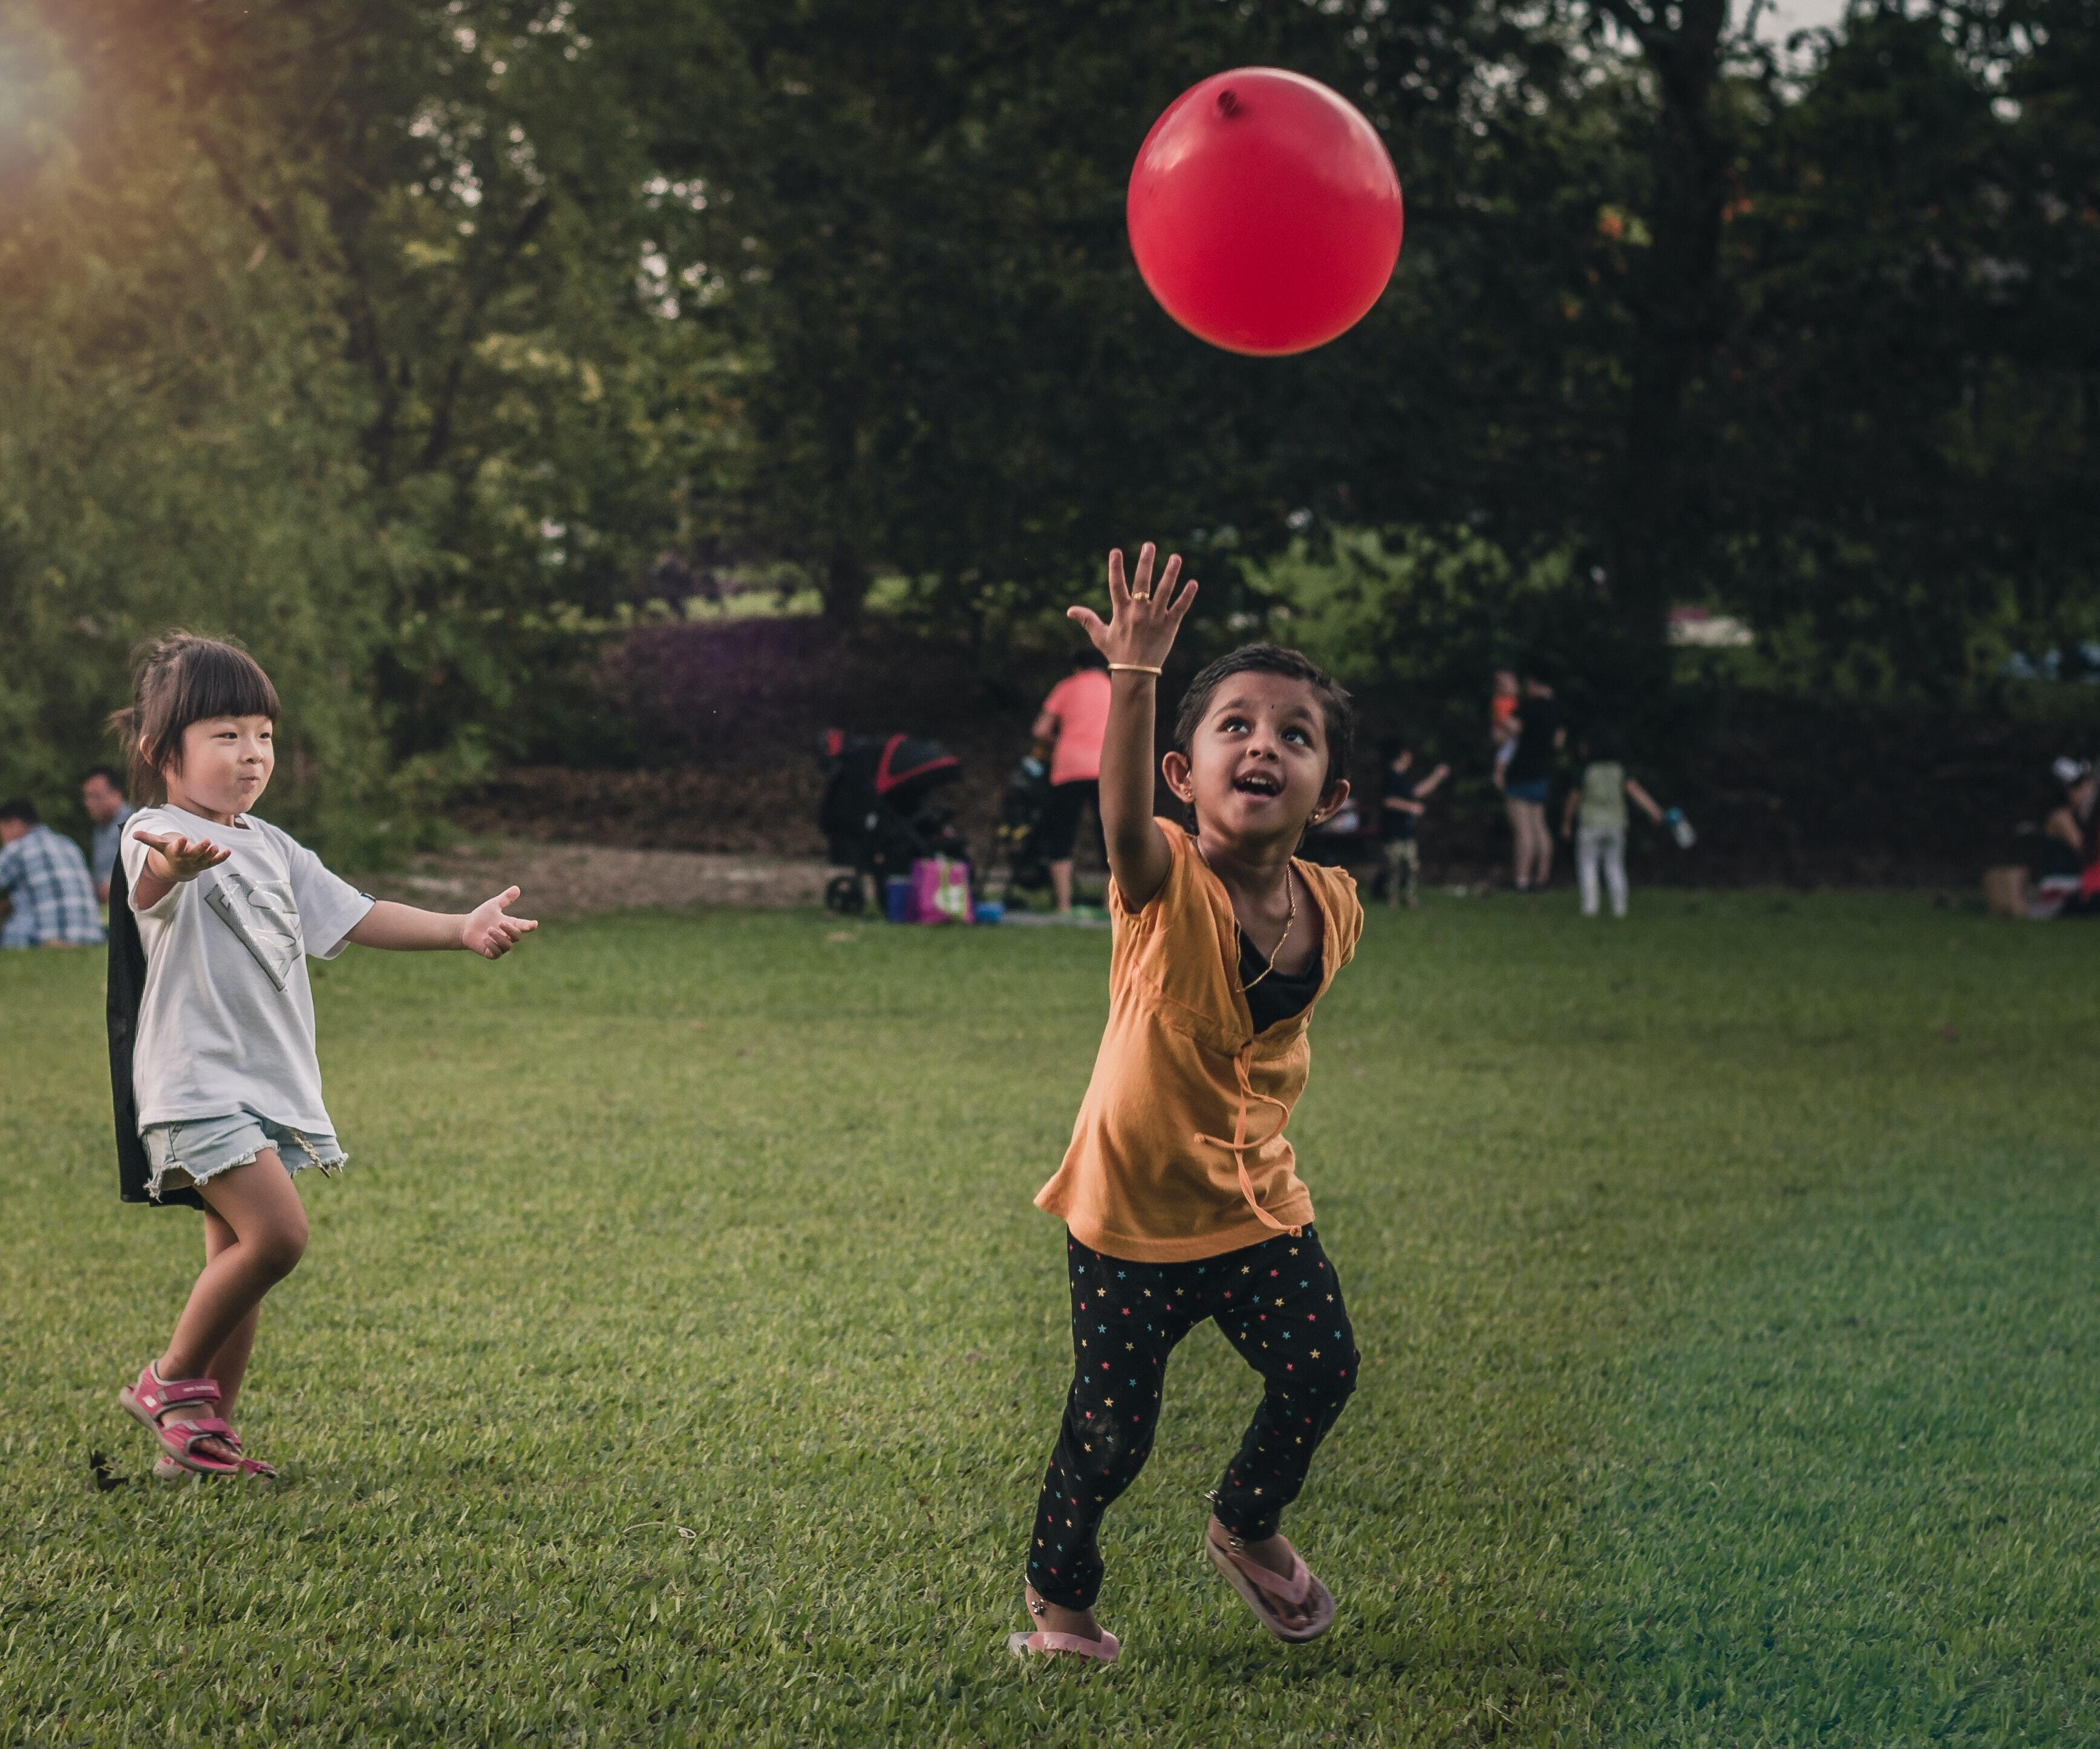 Two young girls, one with bangs and long black hair, one with short black hair and a gold bracelet, play with a red balloon at a grassy green park.